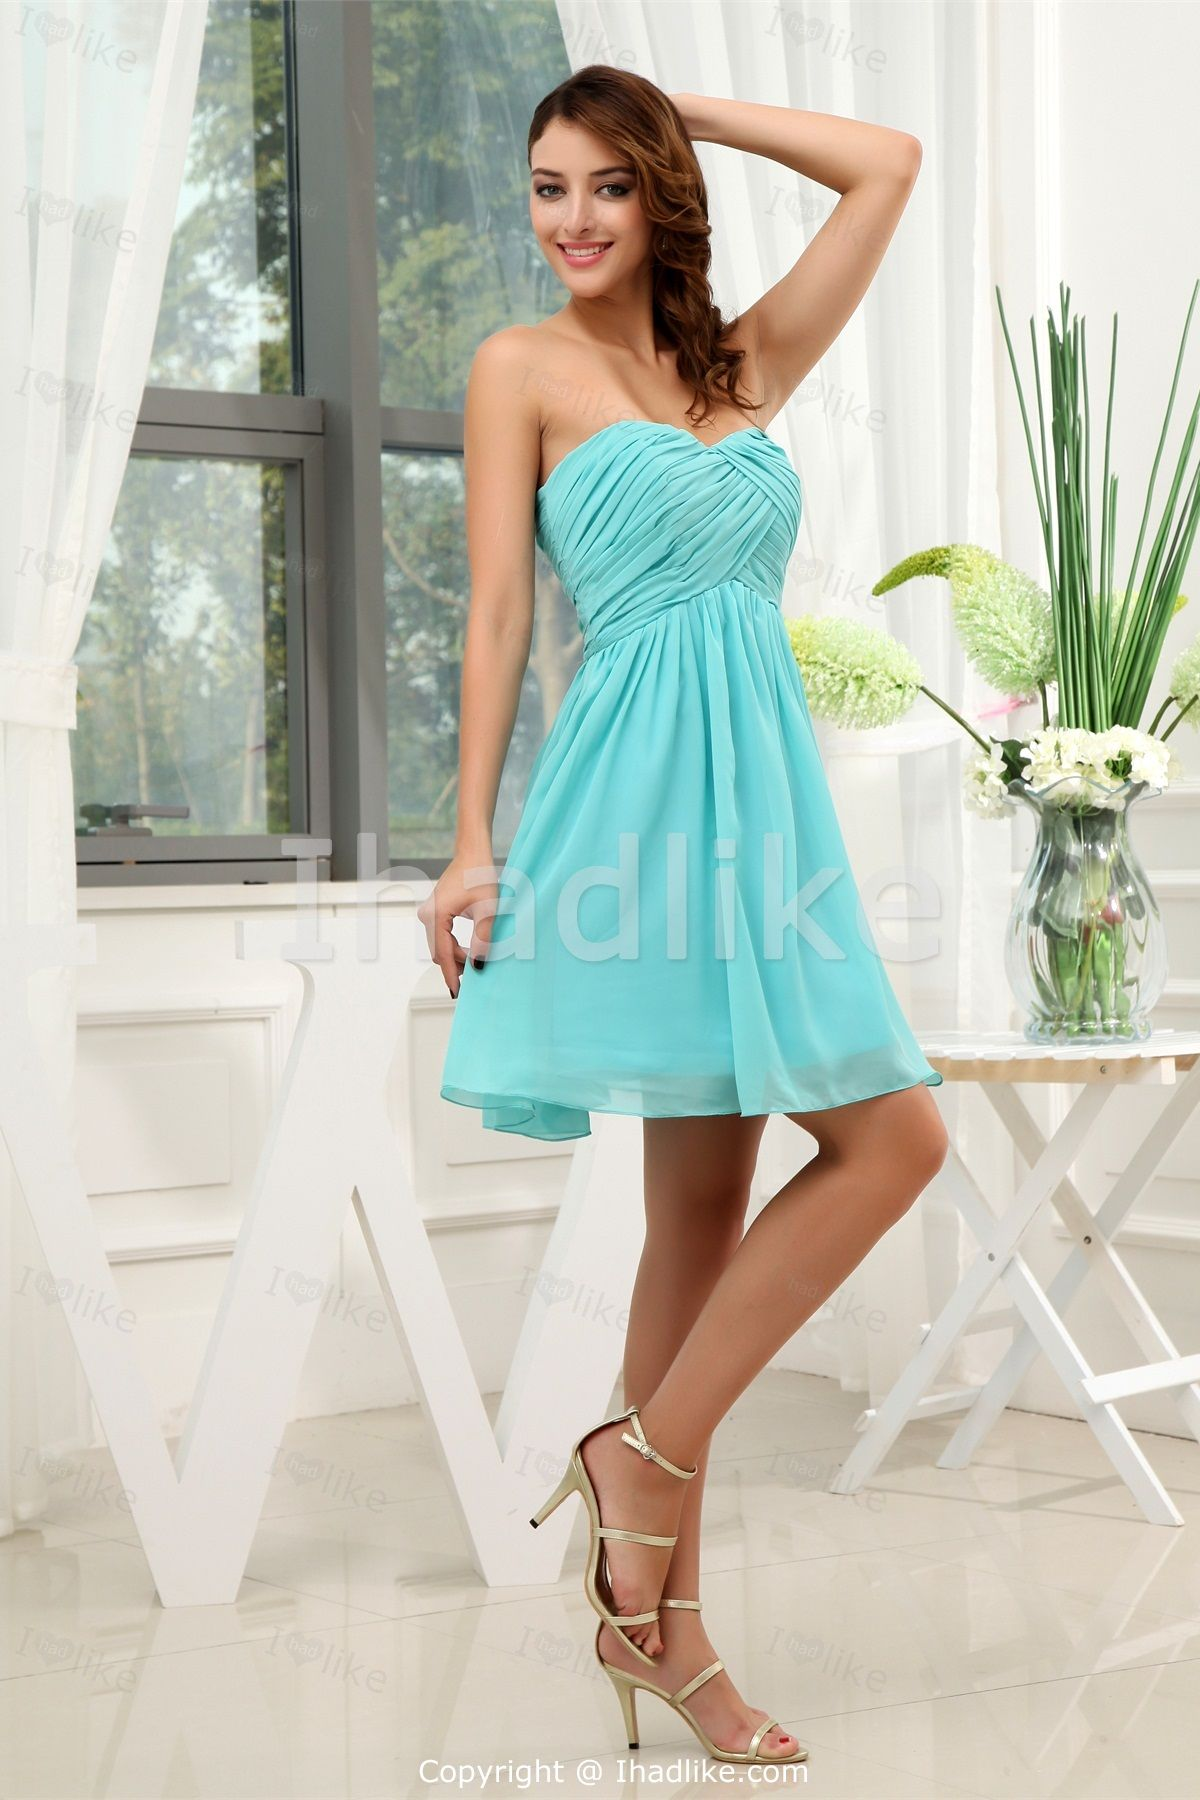 Turquoise bridesmaid dresses google search sisters for Turquoise bridesmaid dresses for beach wedding